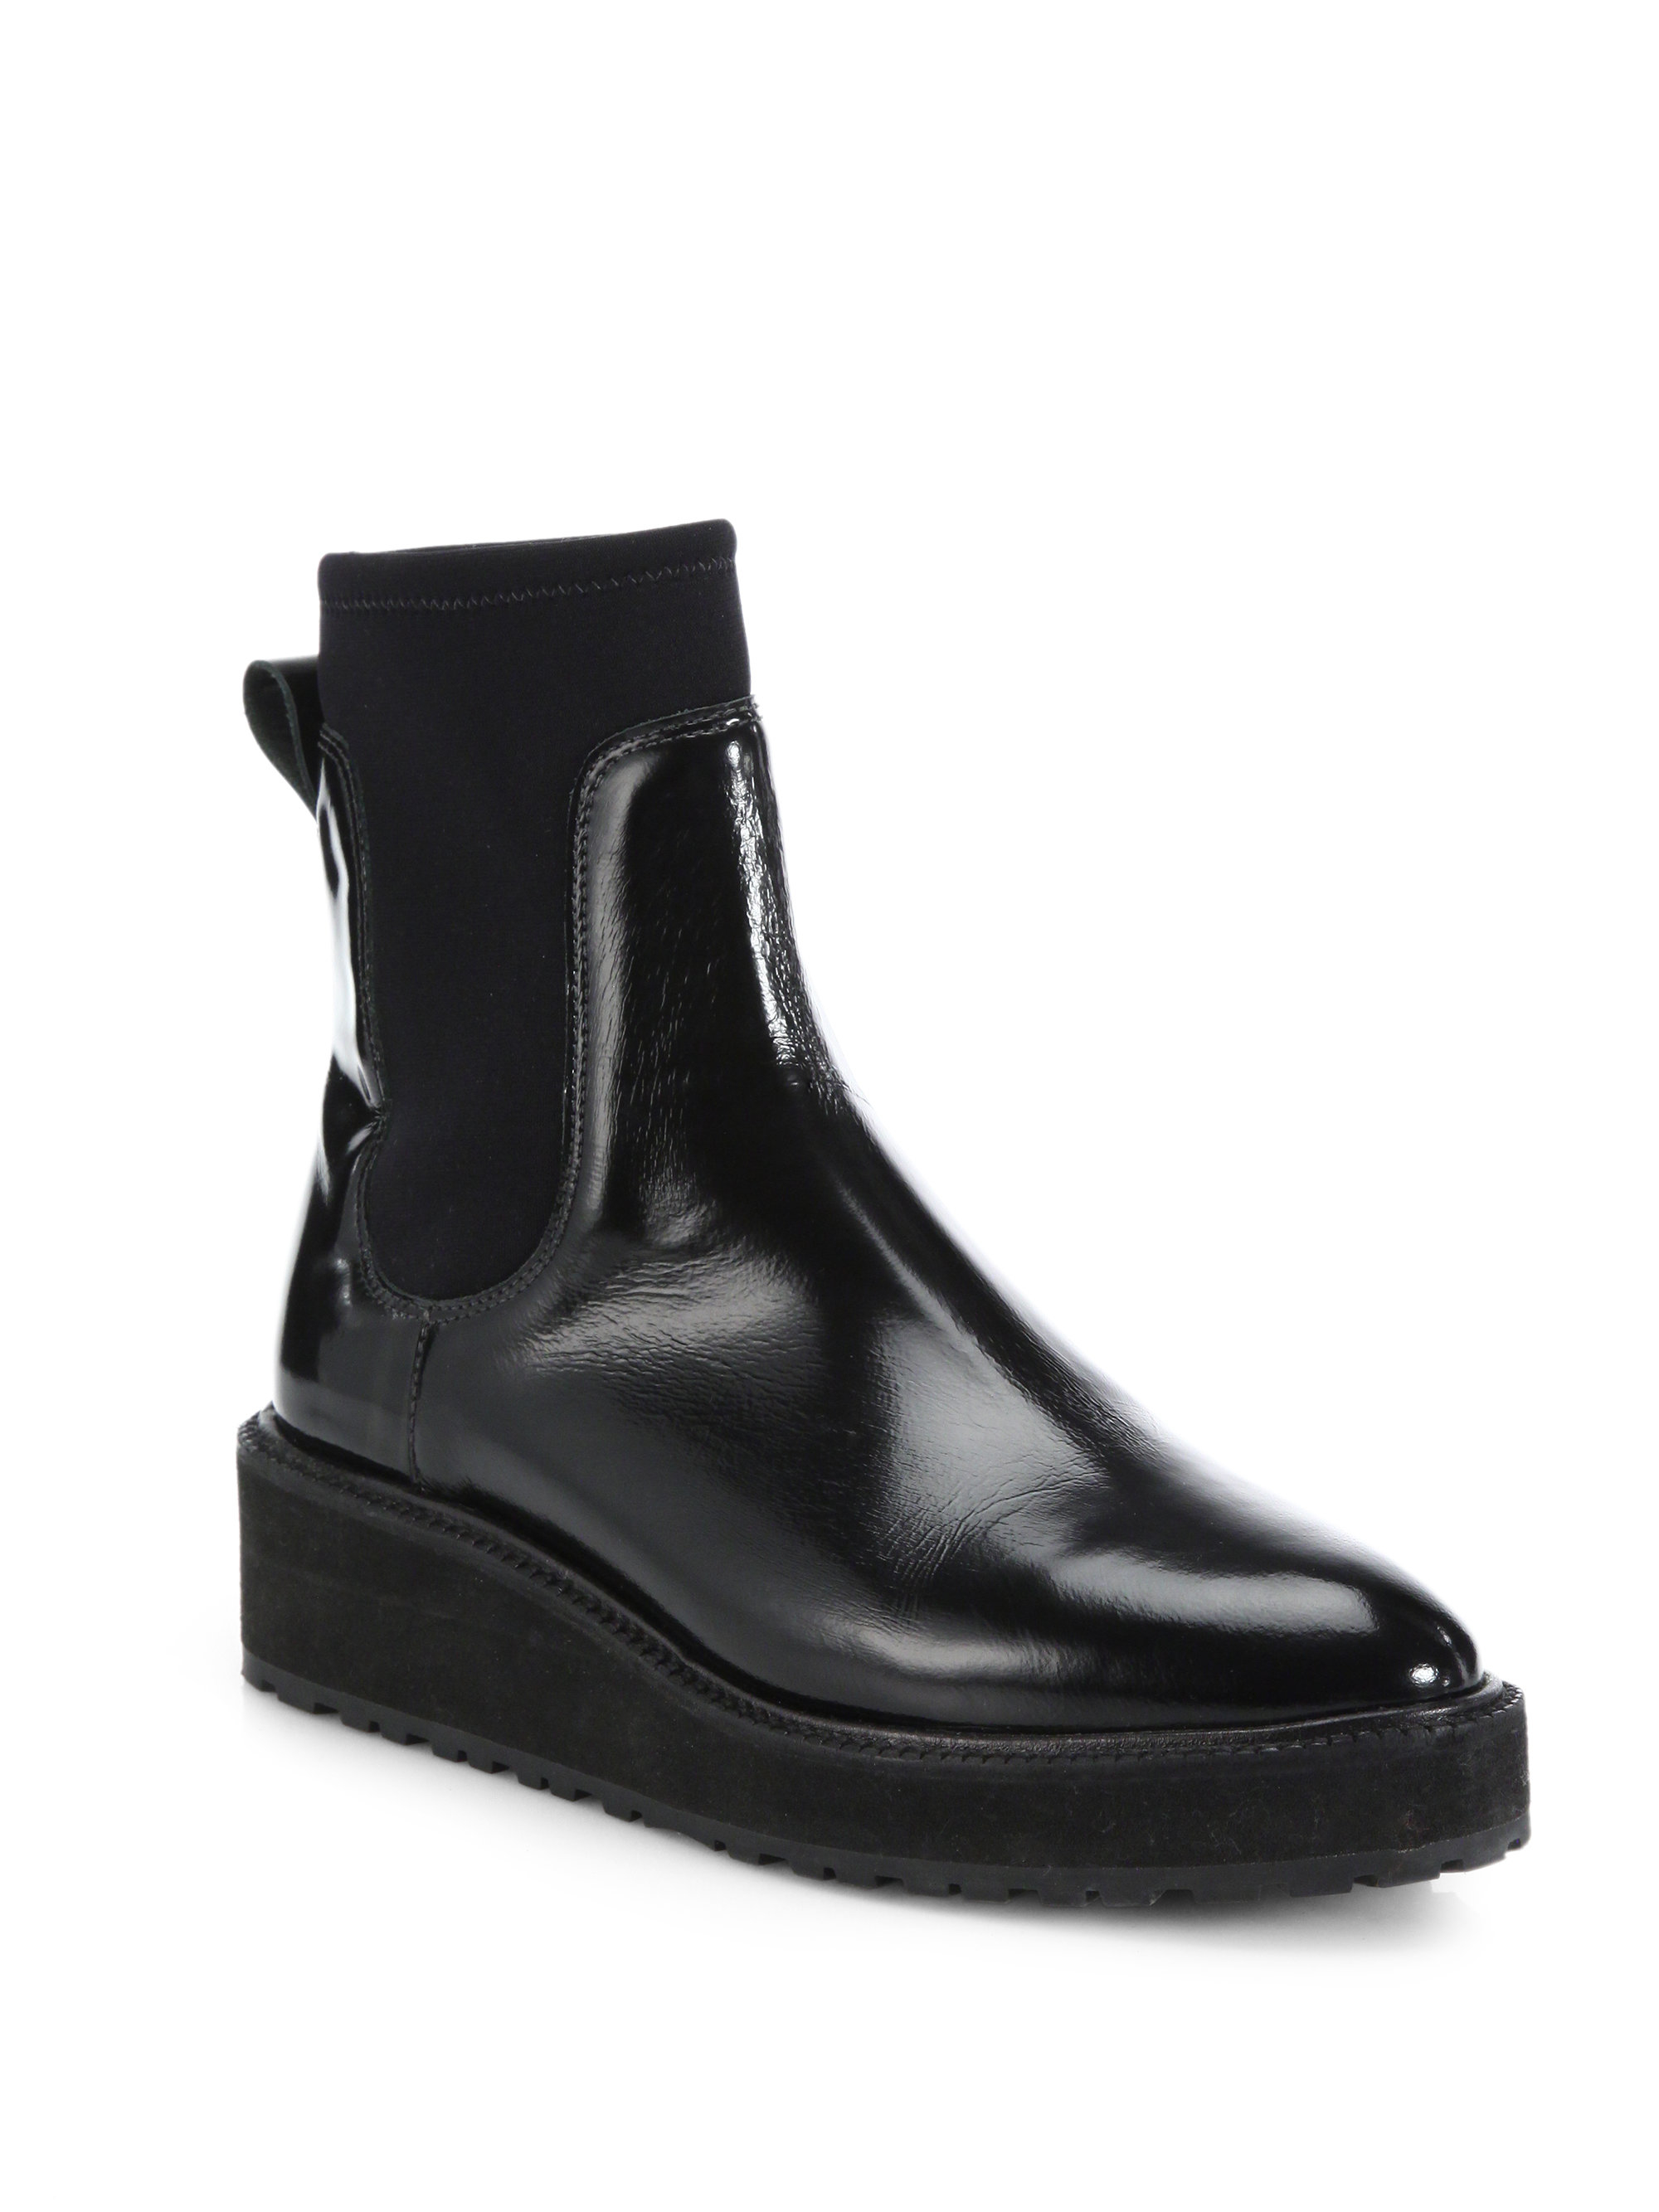 sale with paypal cheap sale 2014 Loeffler Randall Leather Wedge Boots get to buy sale online discount low shipping HkiL5HUjge